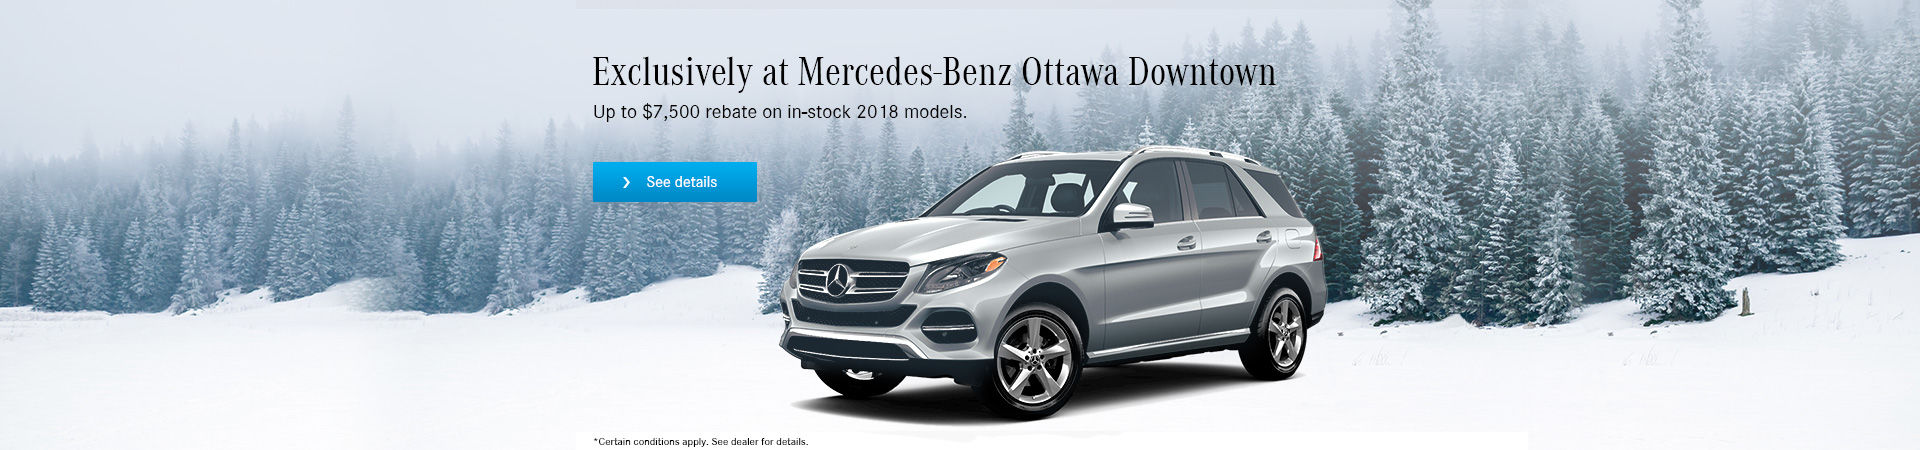 c59c01104b26 Mercedes-Benz Ottawa Downtown   Your Mercedes-Benz, smart dealership